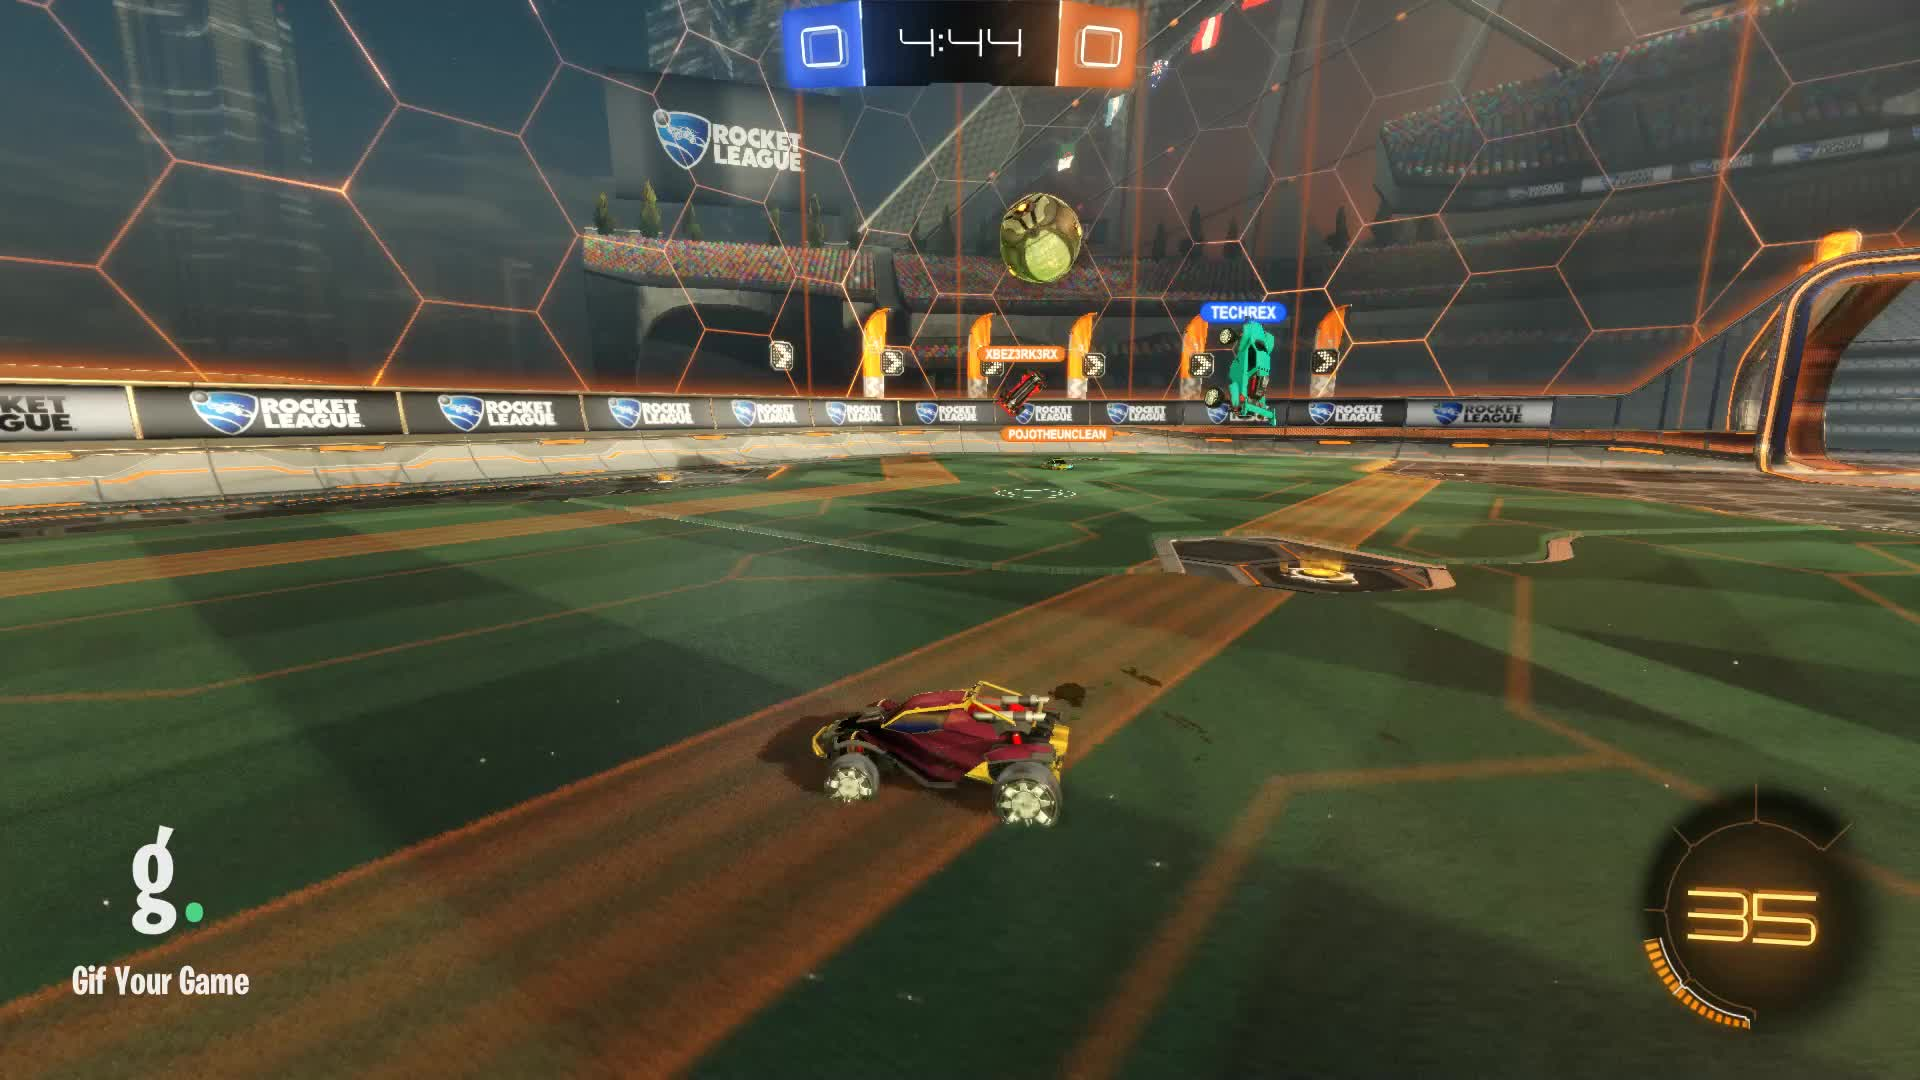 DonJulio, Gif Your Game, GifYourGame, Goal, Rocket League, RocketLeague, Goal 1: DonJulio GIFs